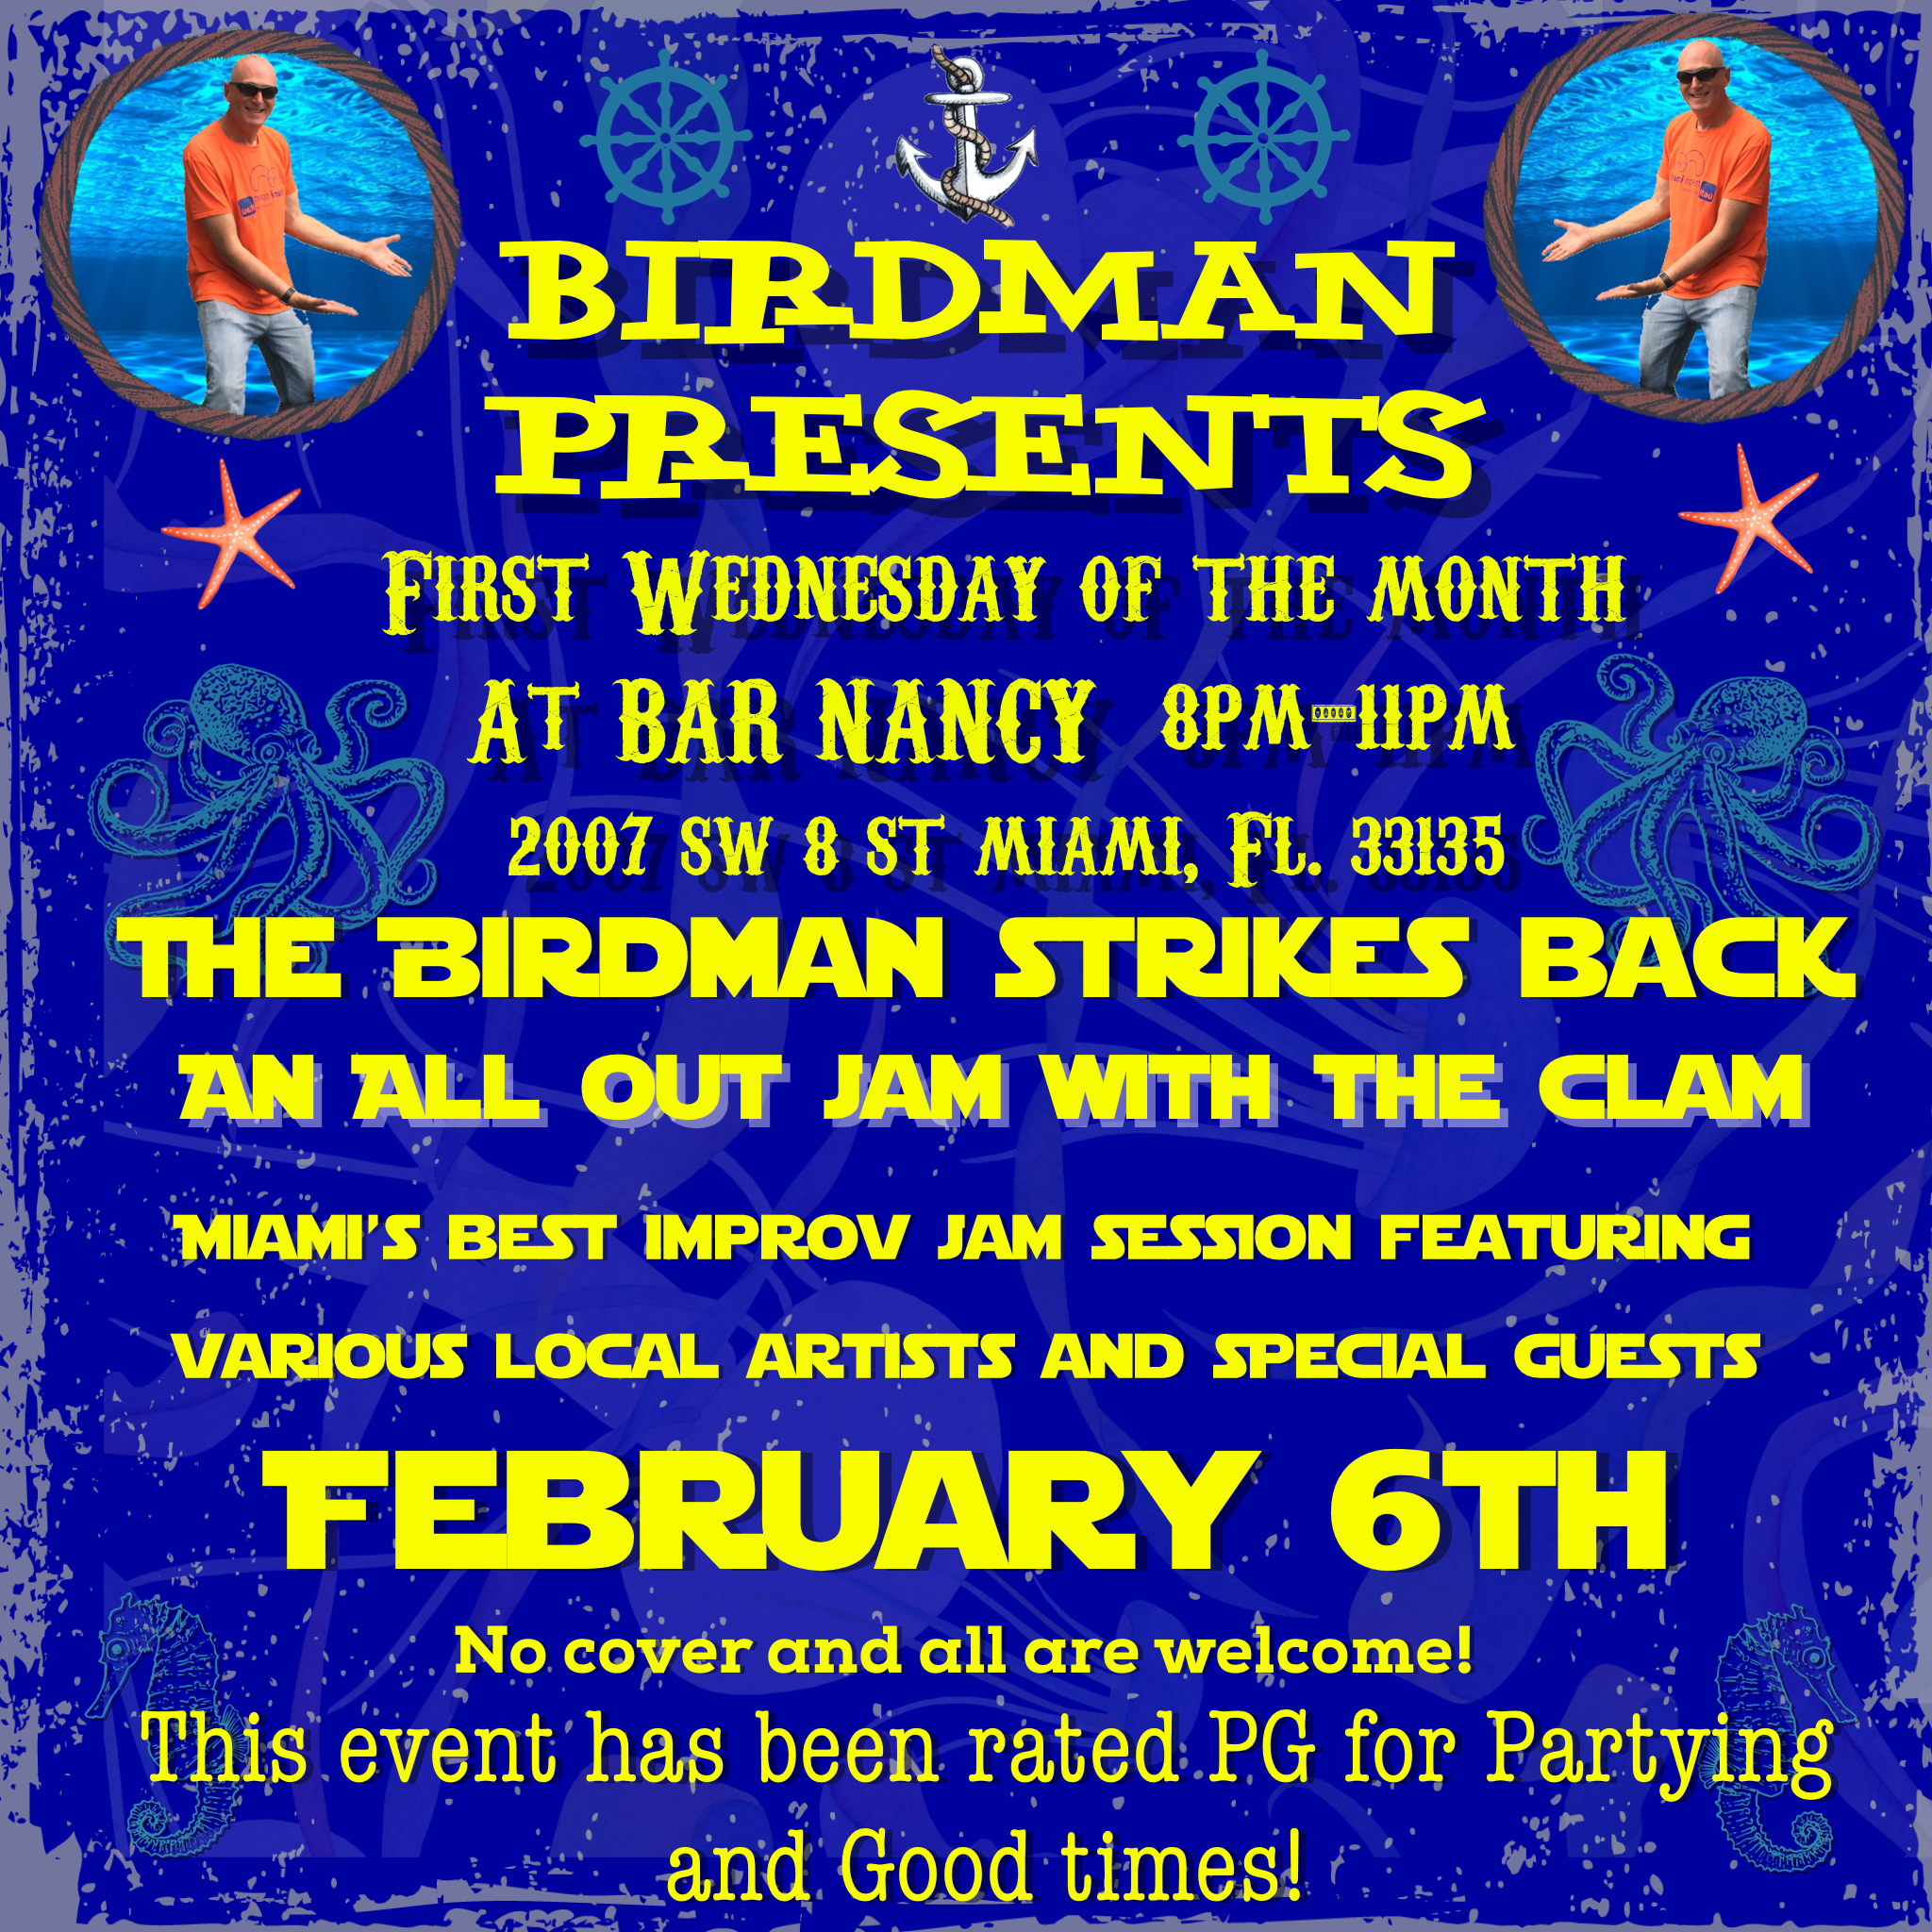 BIRDMAN PRESENTS - FIRST WED OF THE MONTH - THE BIRDMAN STRIKES BACK JAM - FEB 6 - 8PM - NO COVER